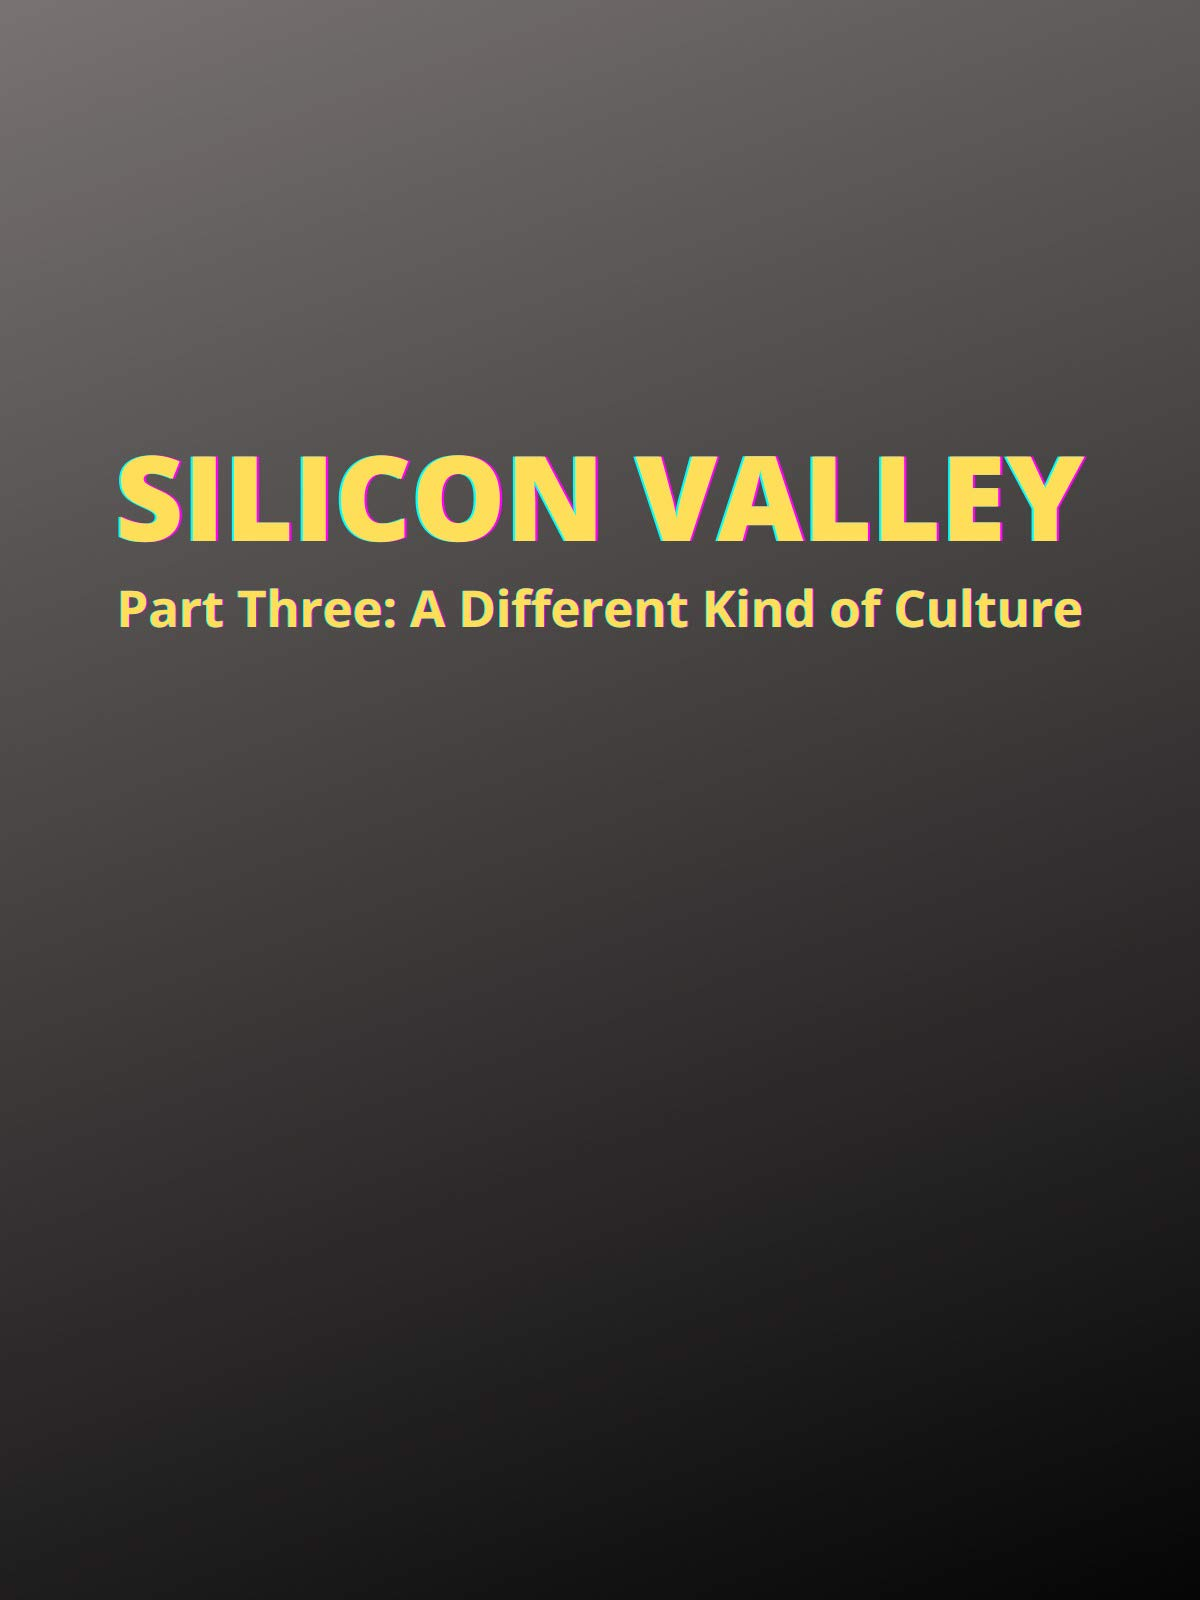 Silicon Valley: Part Three, A Different Kind of Culture